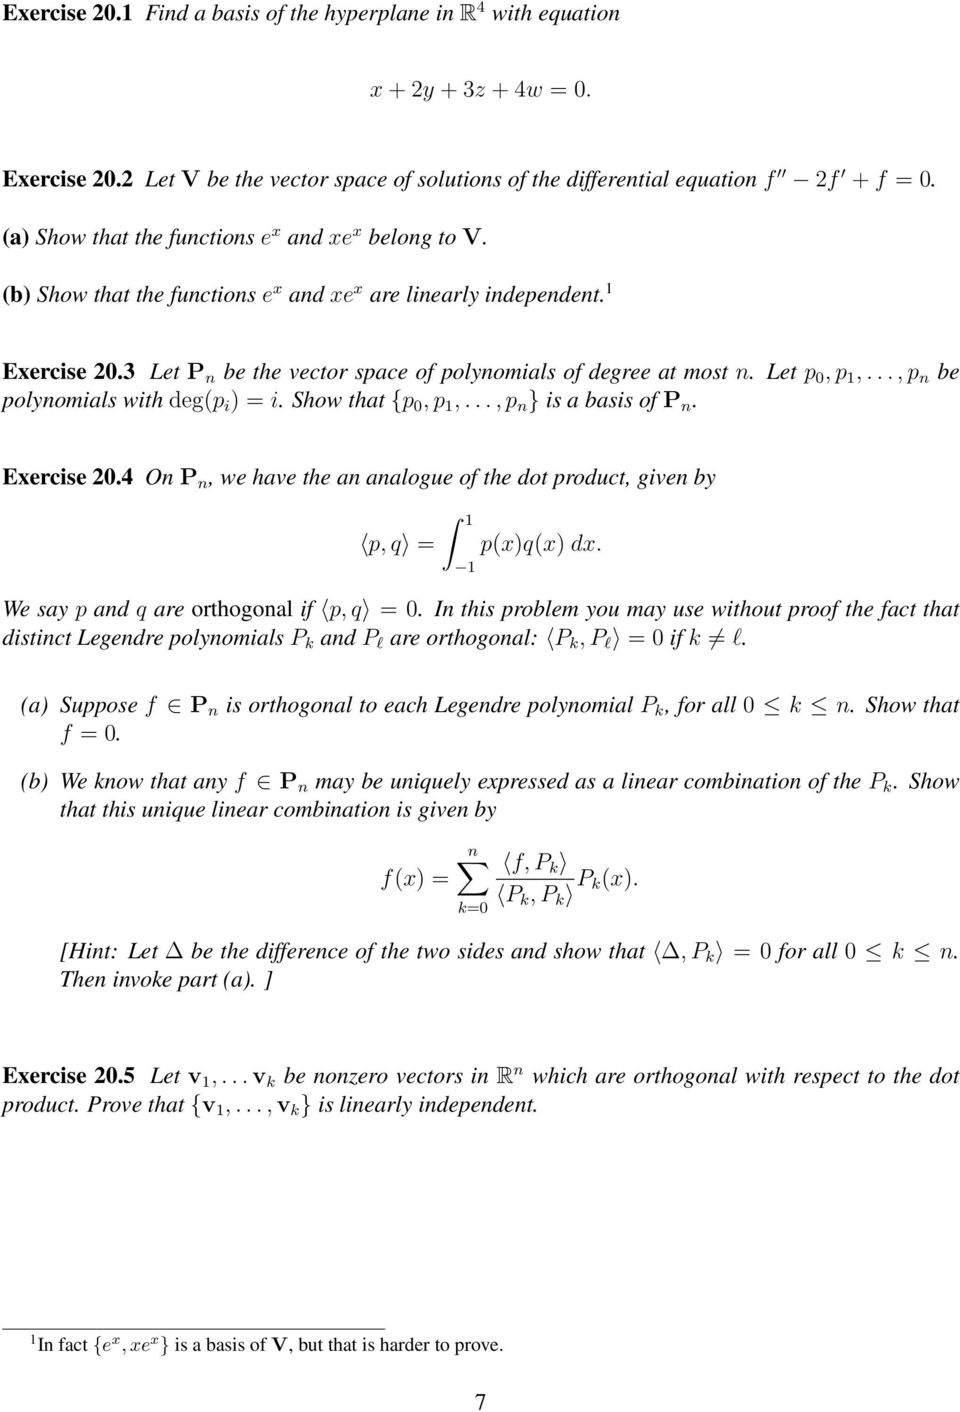 Let p 0, p 1,..., p n be polynomials with deg(p i ) = i. Show that {p 0, p 1,..., p n } is a basis of P n. Exercise 20.